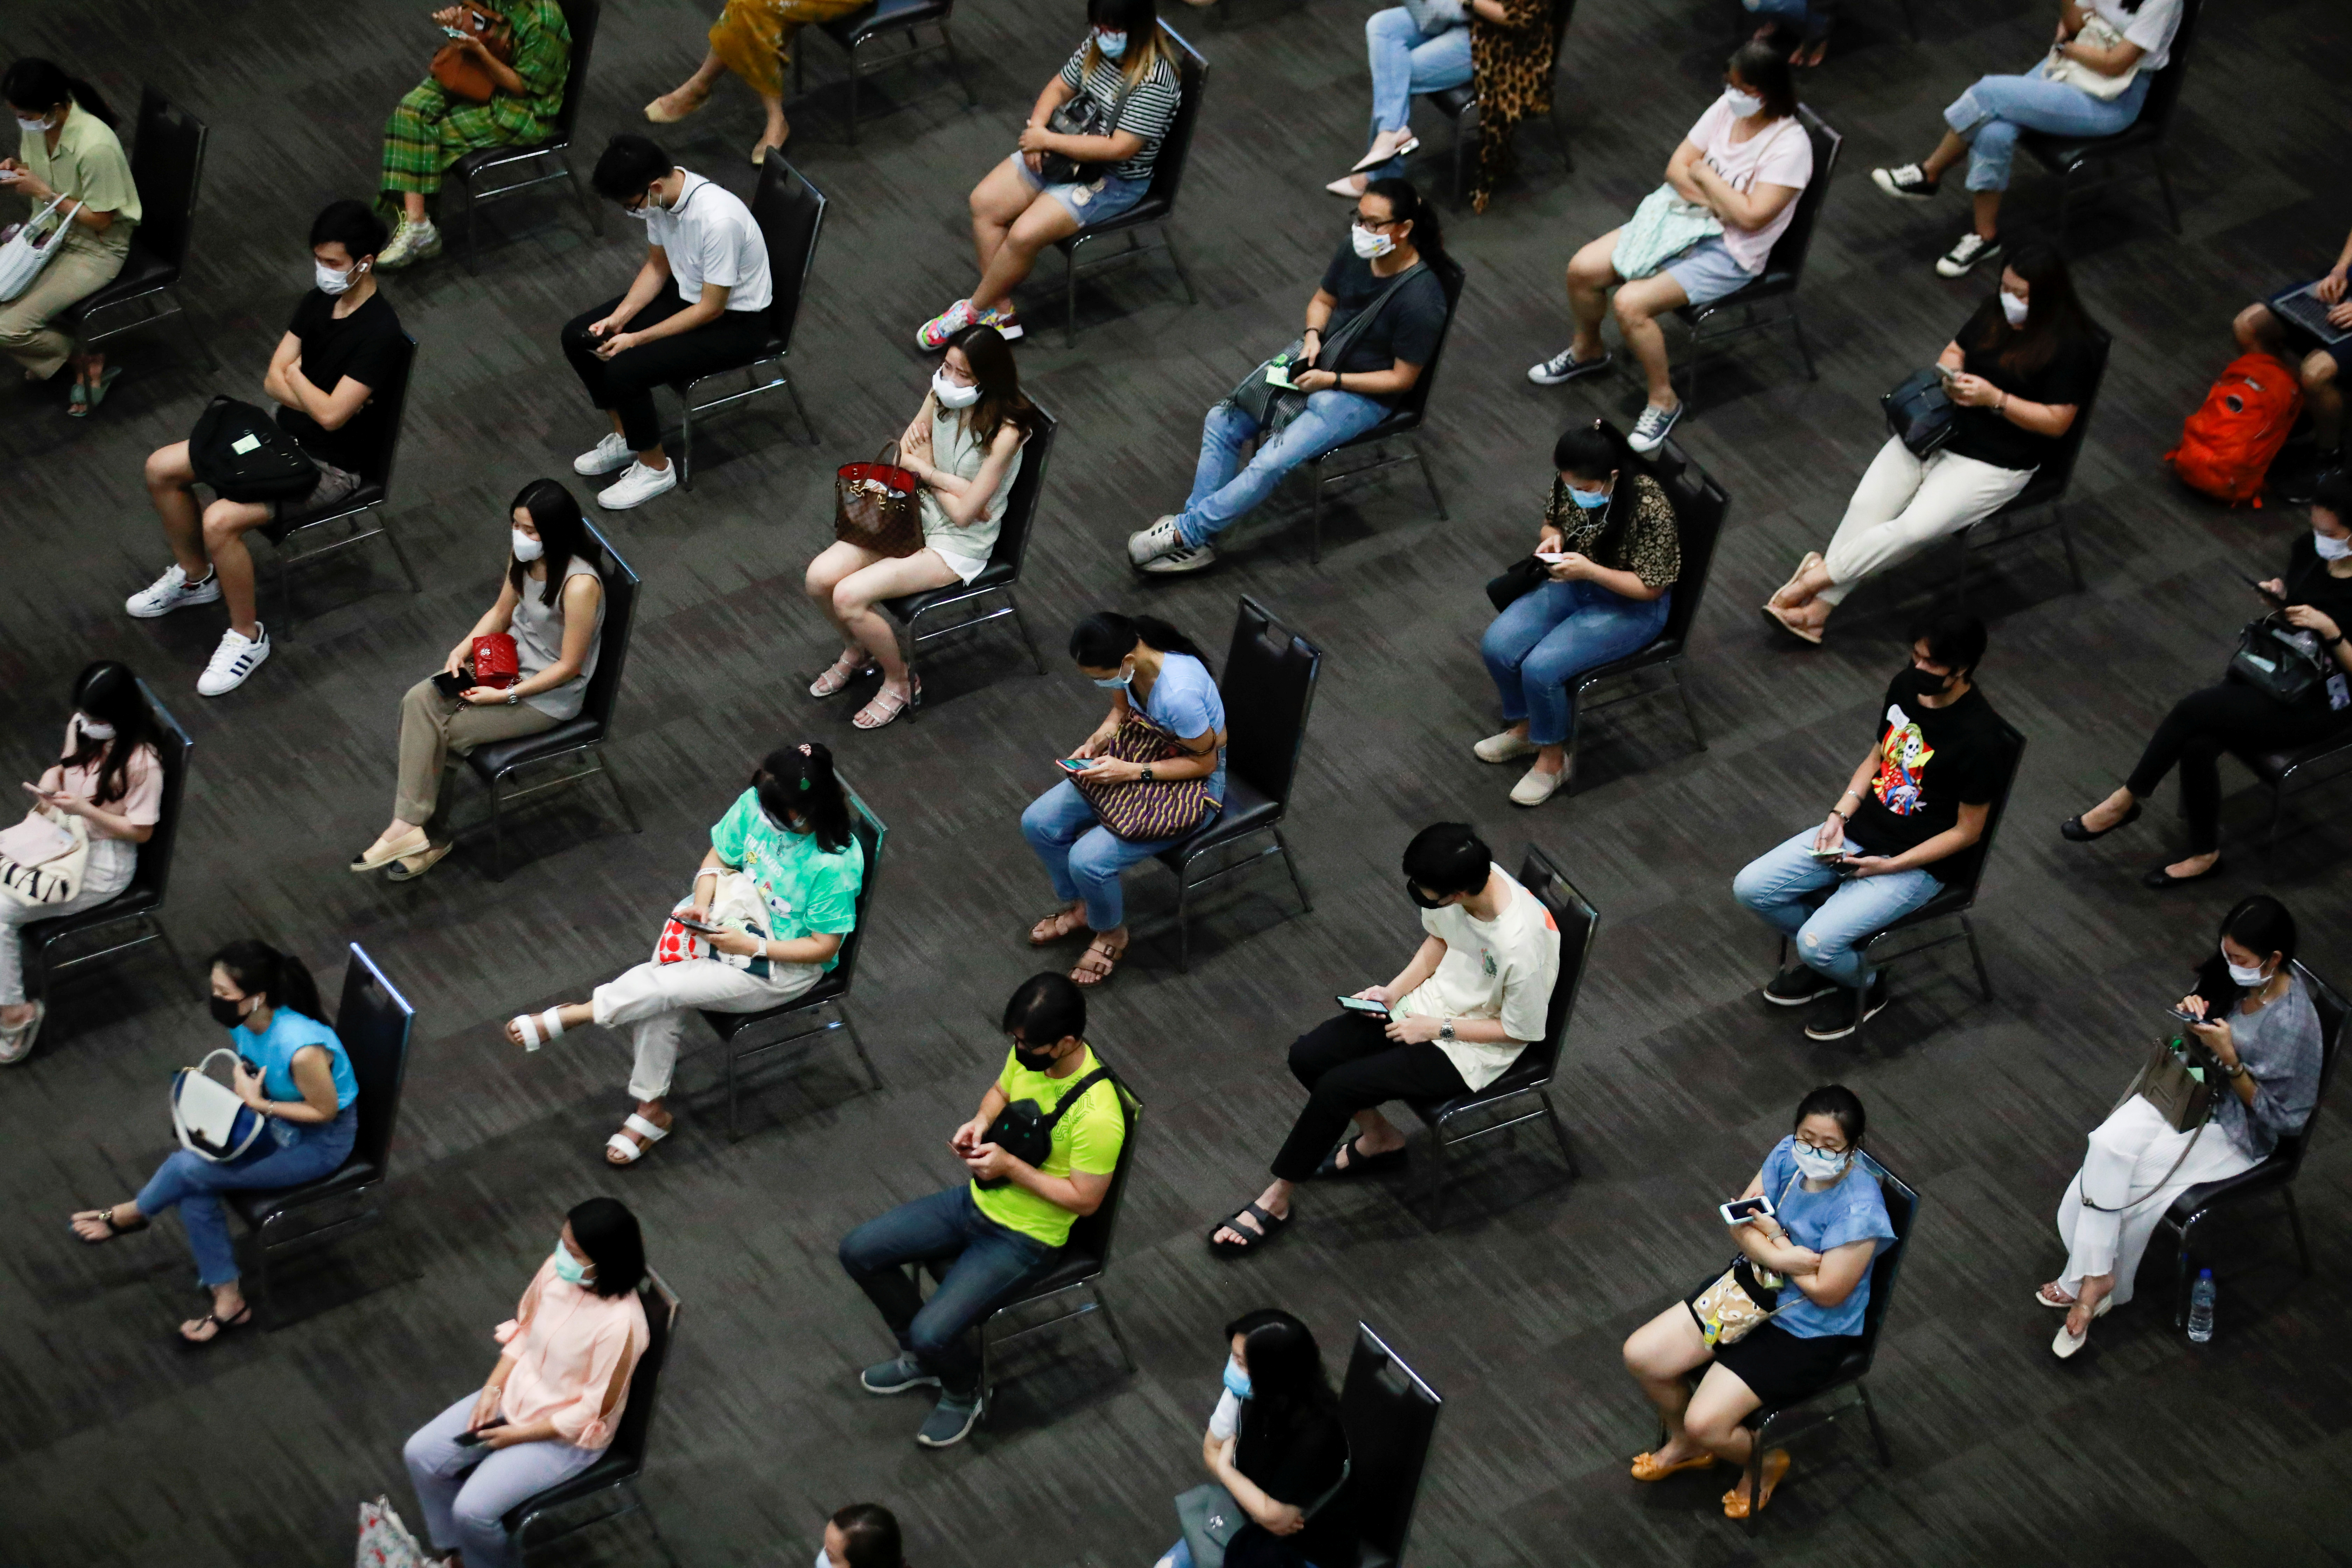 People wait to receive the first dose of the AstraZeneca COVID-19 vaccine against the coronavirus disease (COVID-19) as Thailand start a mass inoculation at a gymnasium inside the Siam paragon Shopping center, Bangkok, Thailand June 7, 2021. REUTERS/Soe Zeya Tun